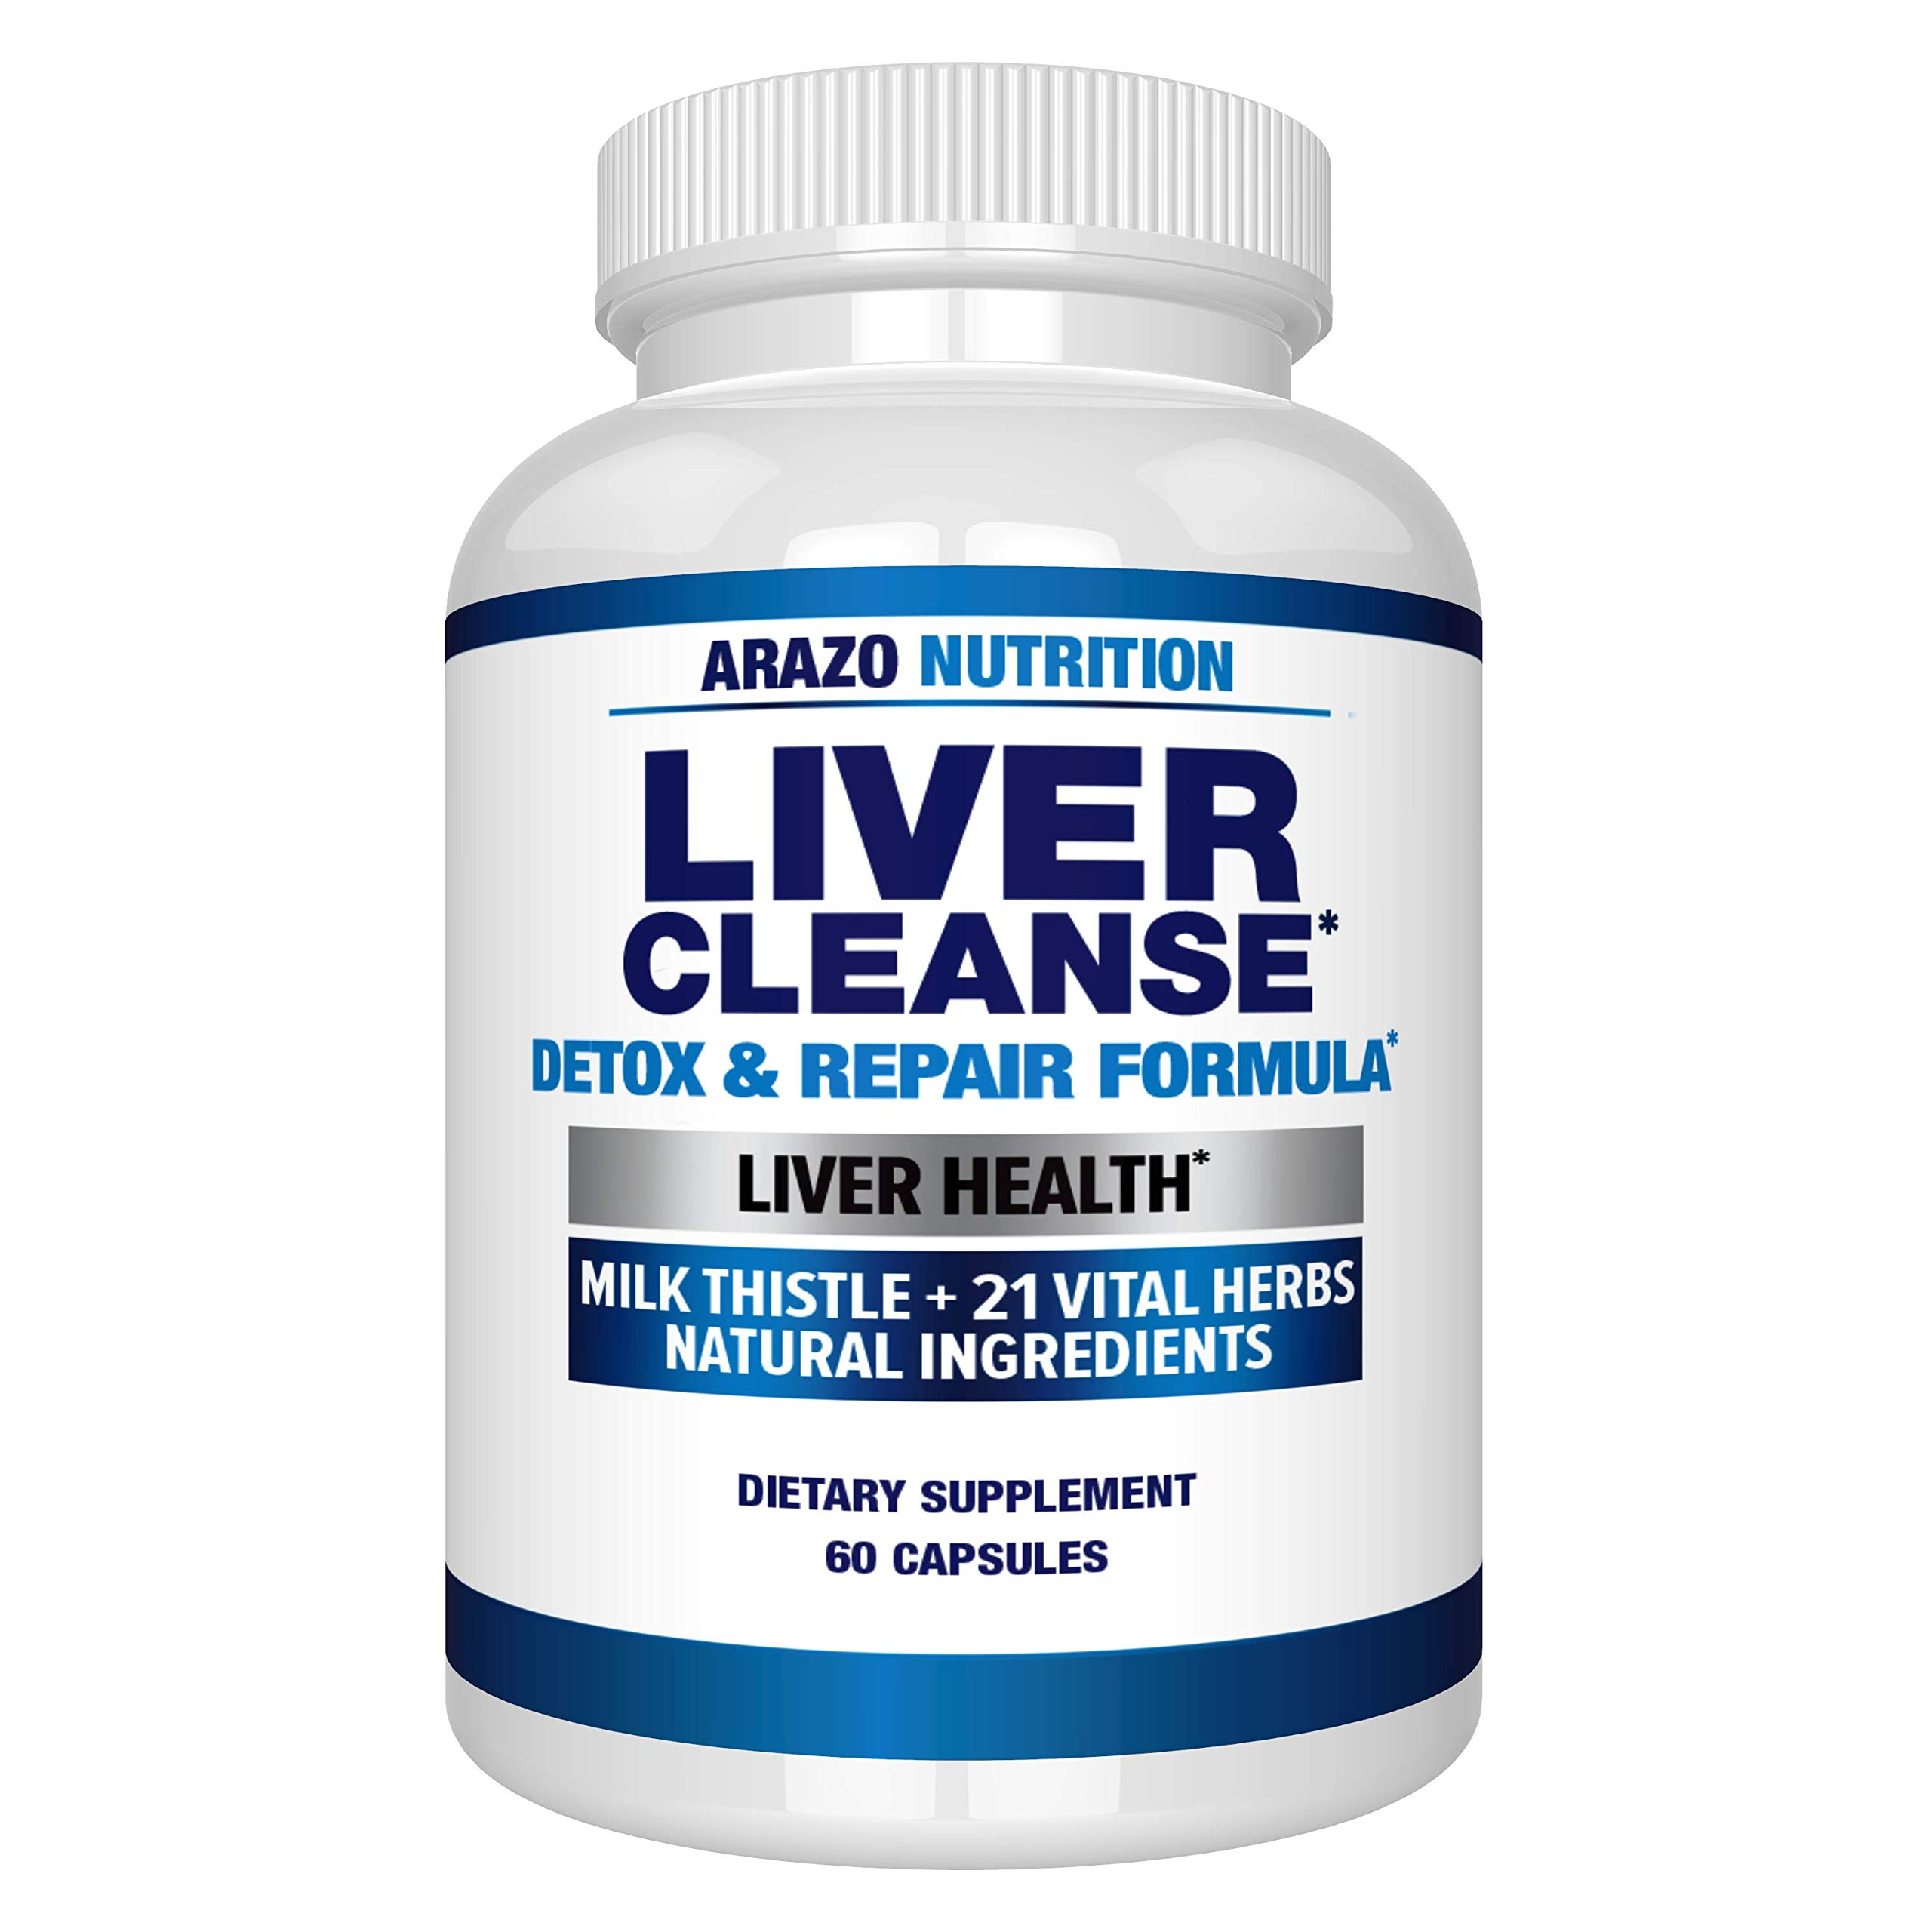 Liver Cleanse Detox & Repair Formula – 22 Herbs Support Supplement: Milk Thistle Extracts Silymarin, Beet, Artichoke, Dandelion, Chicory Root – Arazo Nutrition